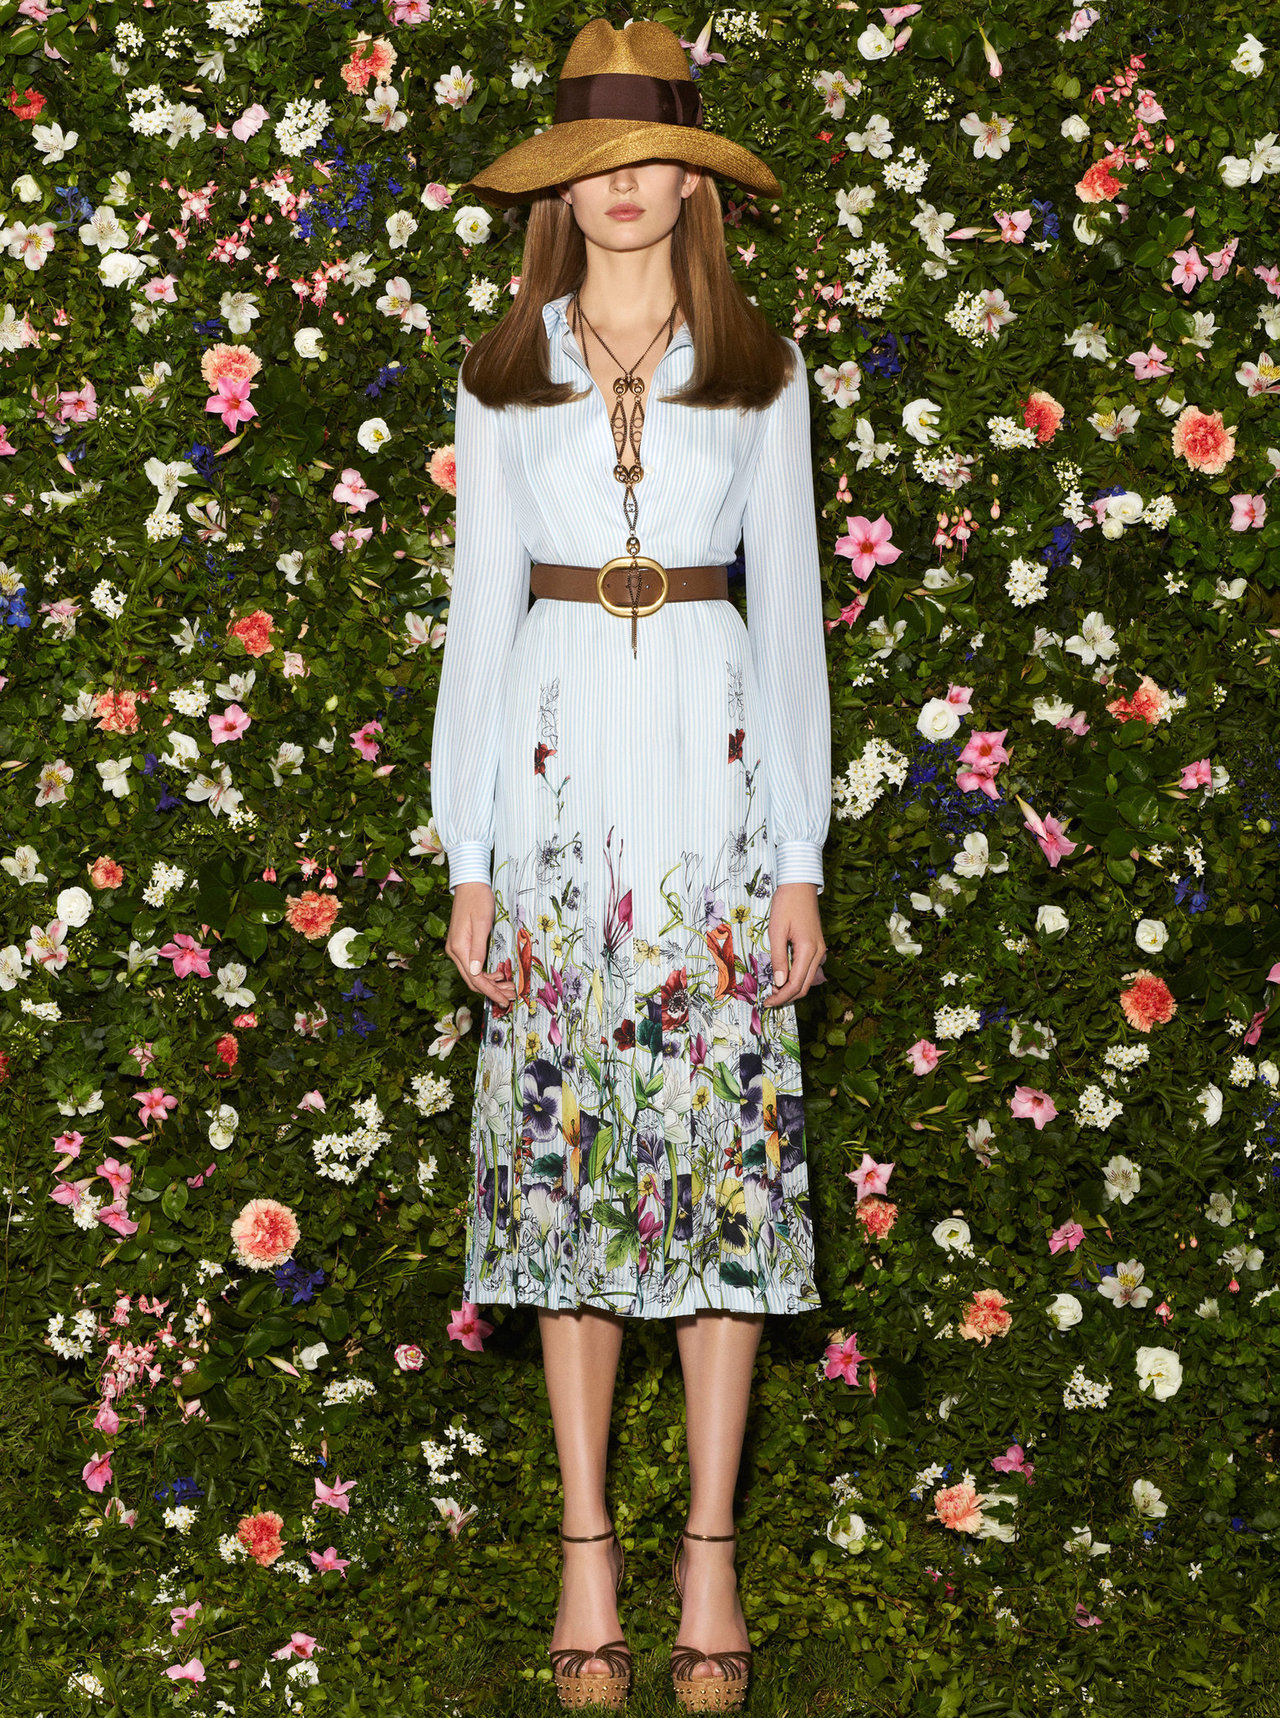 Florals at Gucci.